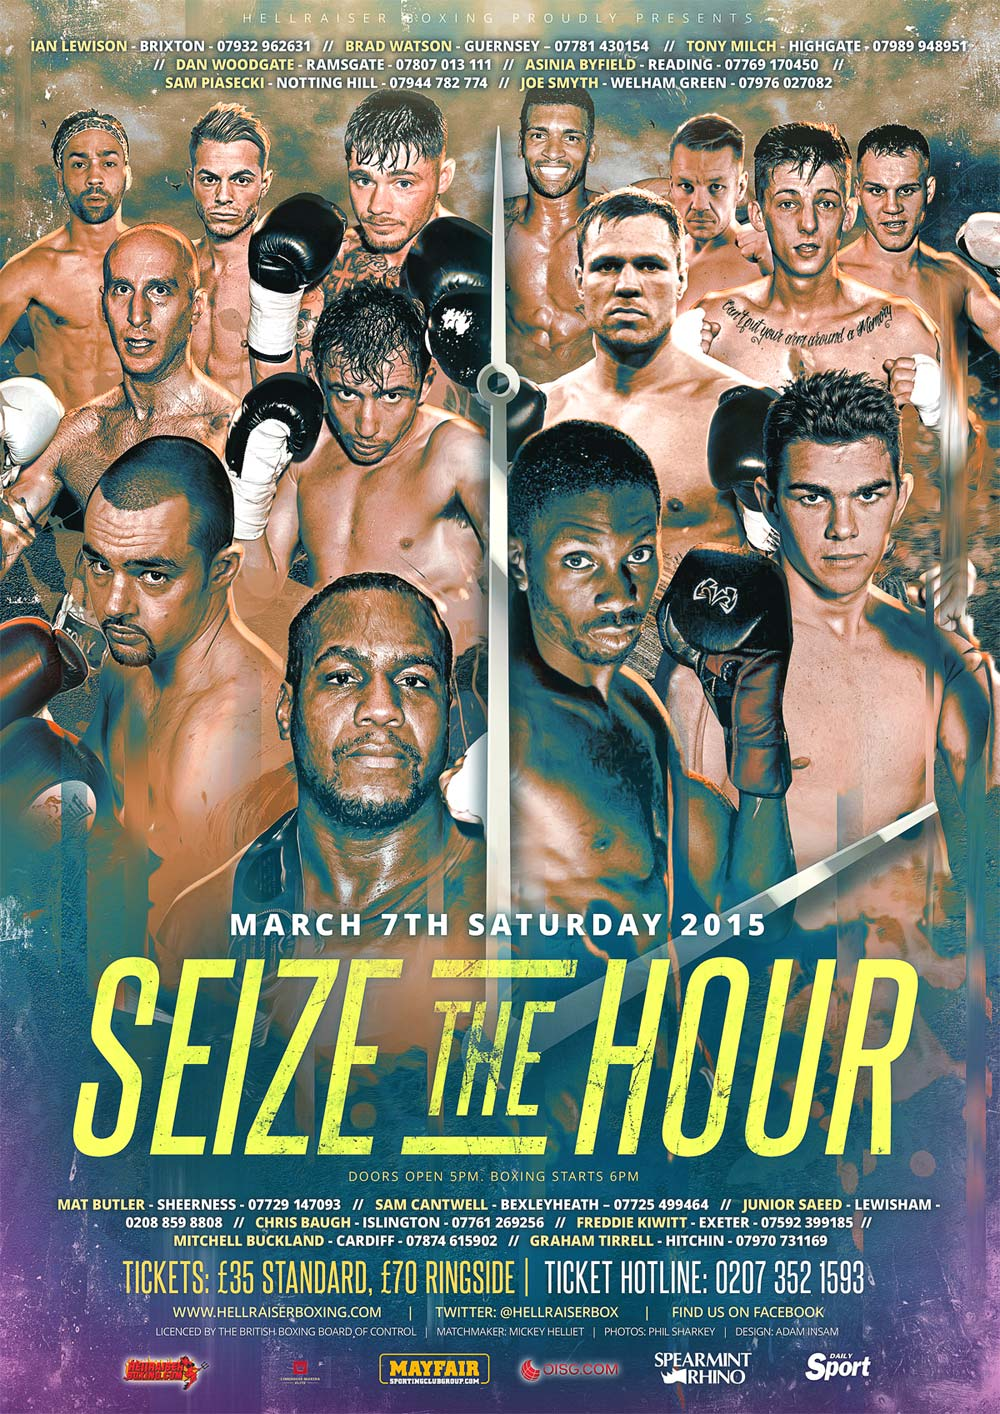 seize the hour at the camden centre